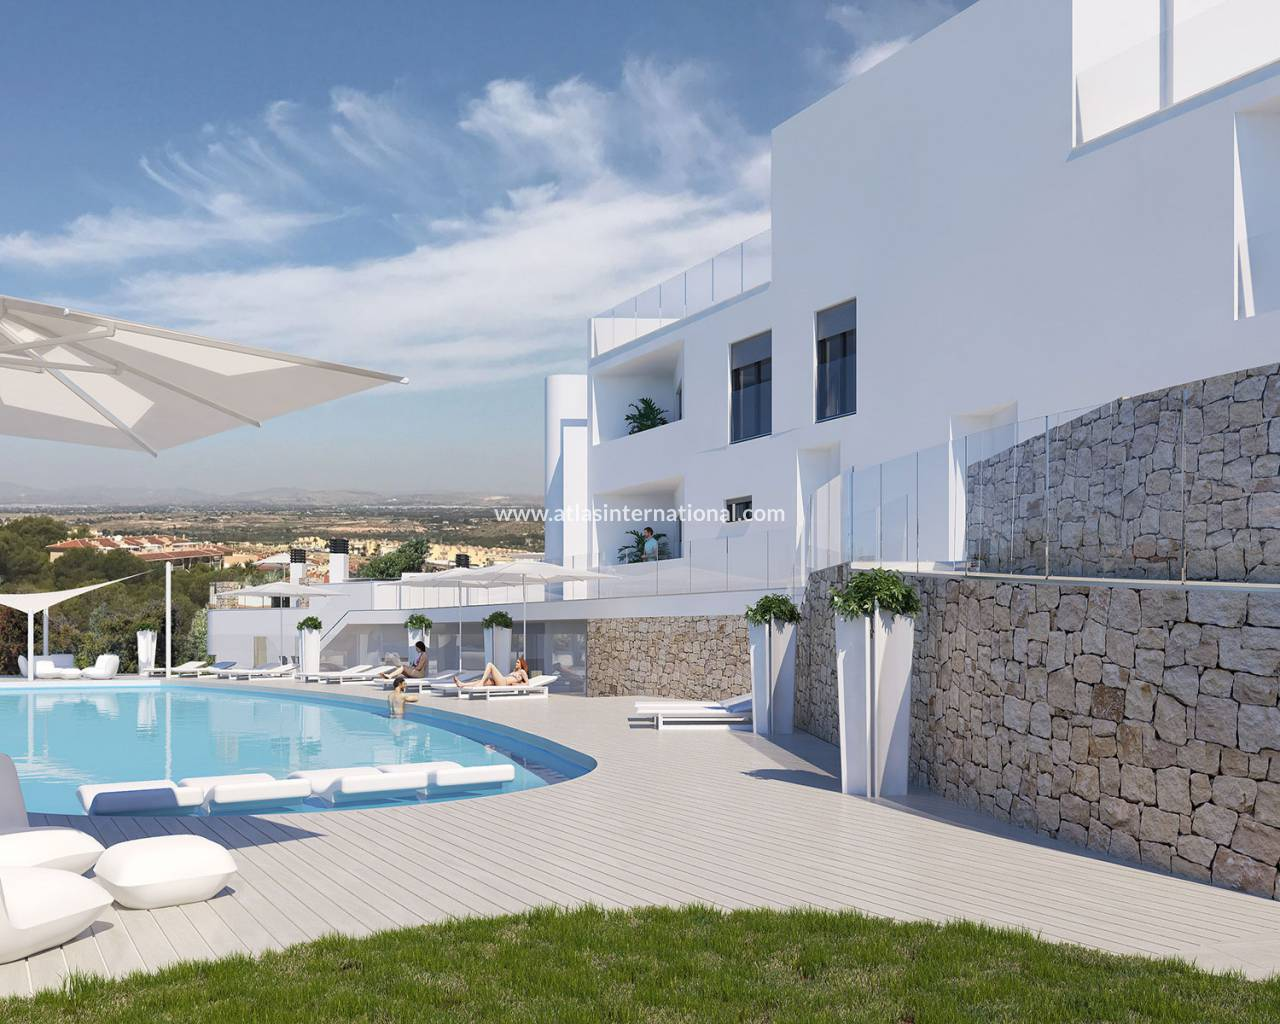 Duplex - New Build - Santa pola - Santa pola